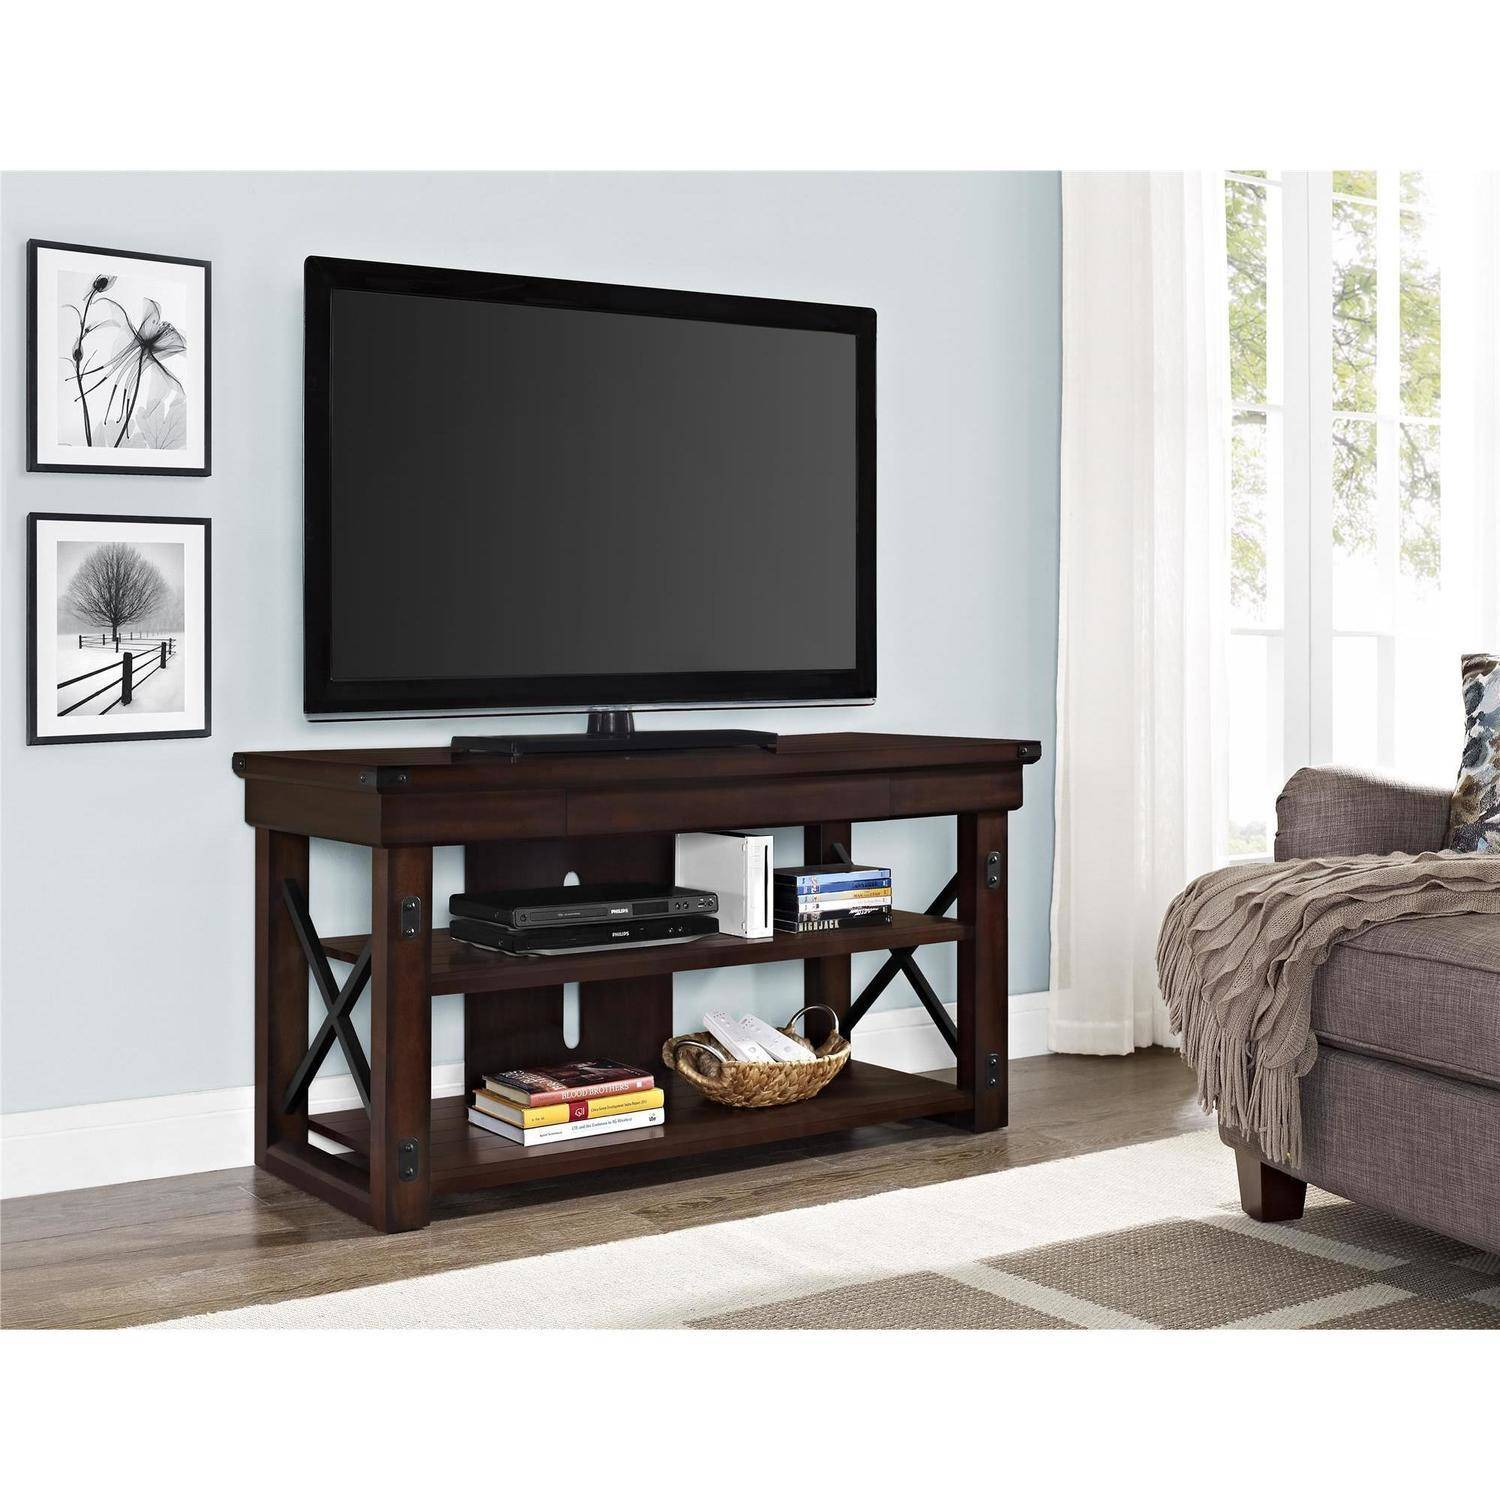 Better Homes and Gardens Preston Park TV Stand for TVs up to 50